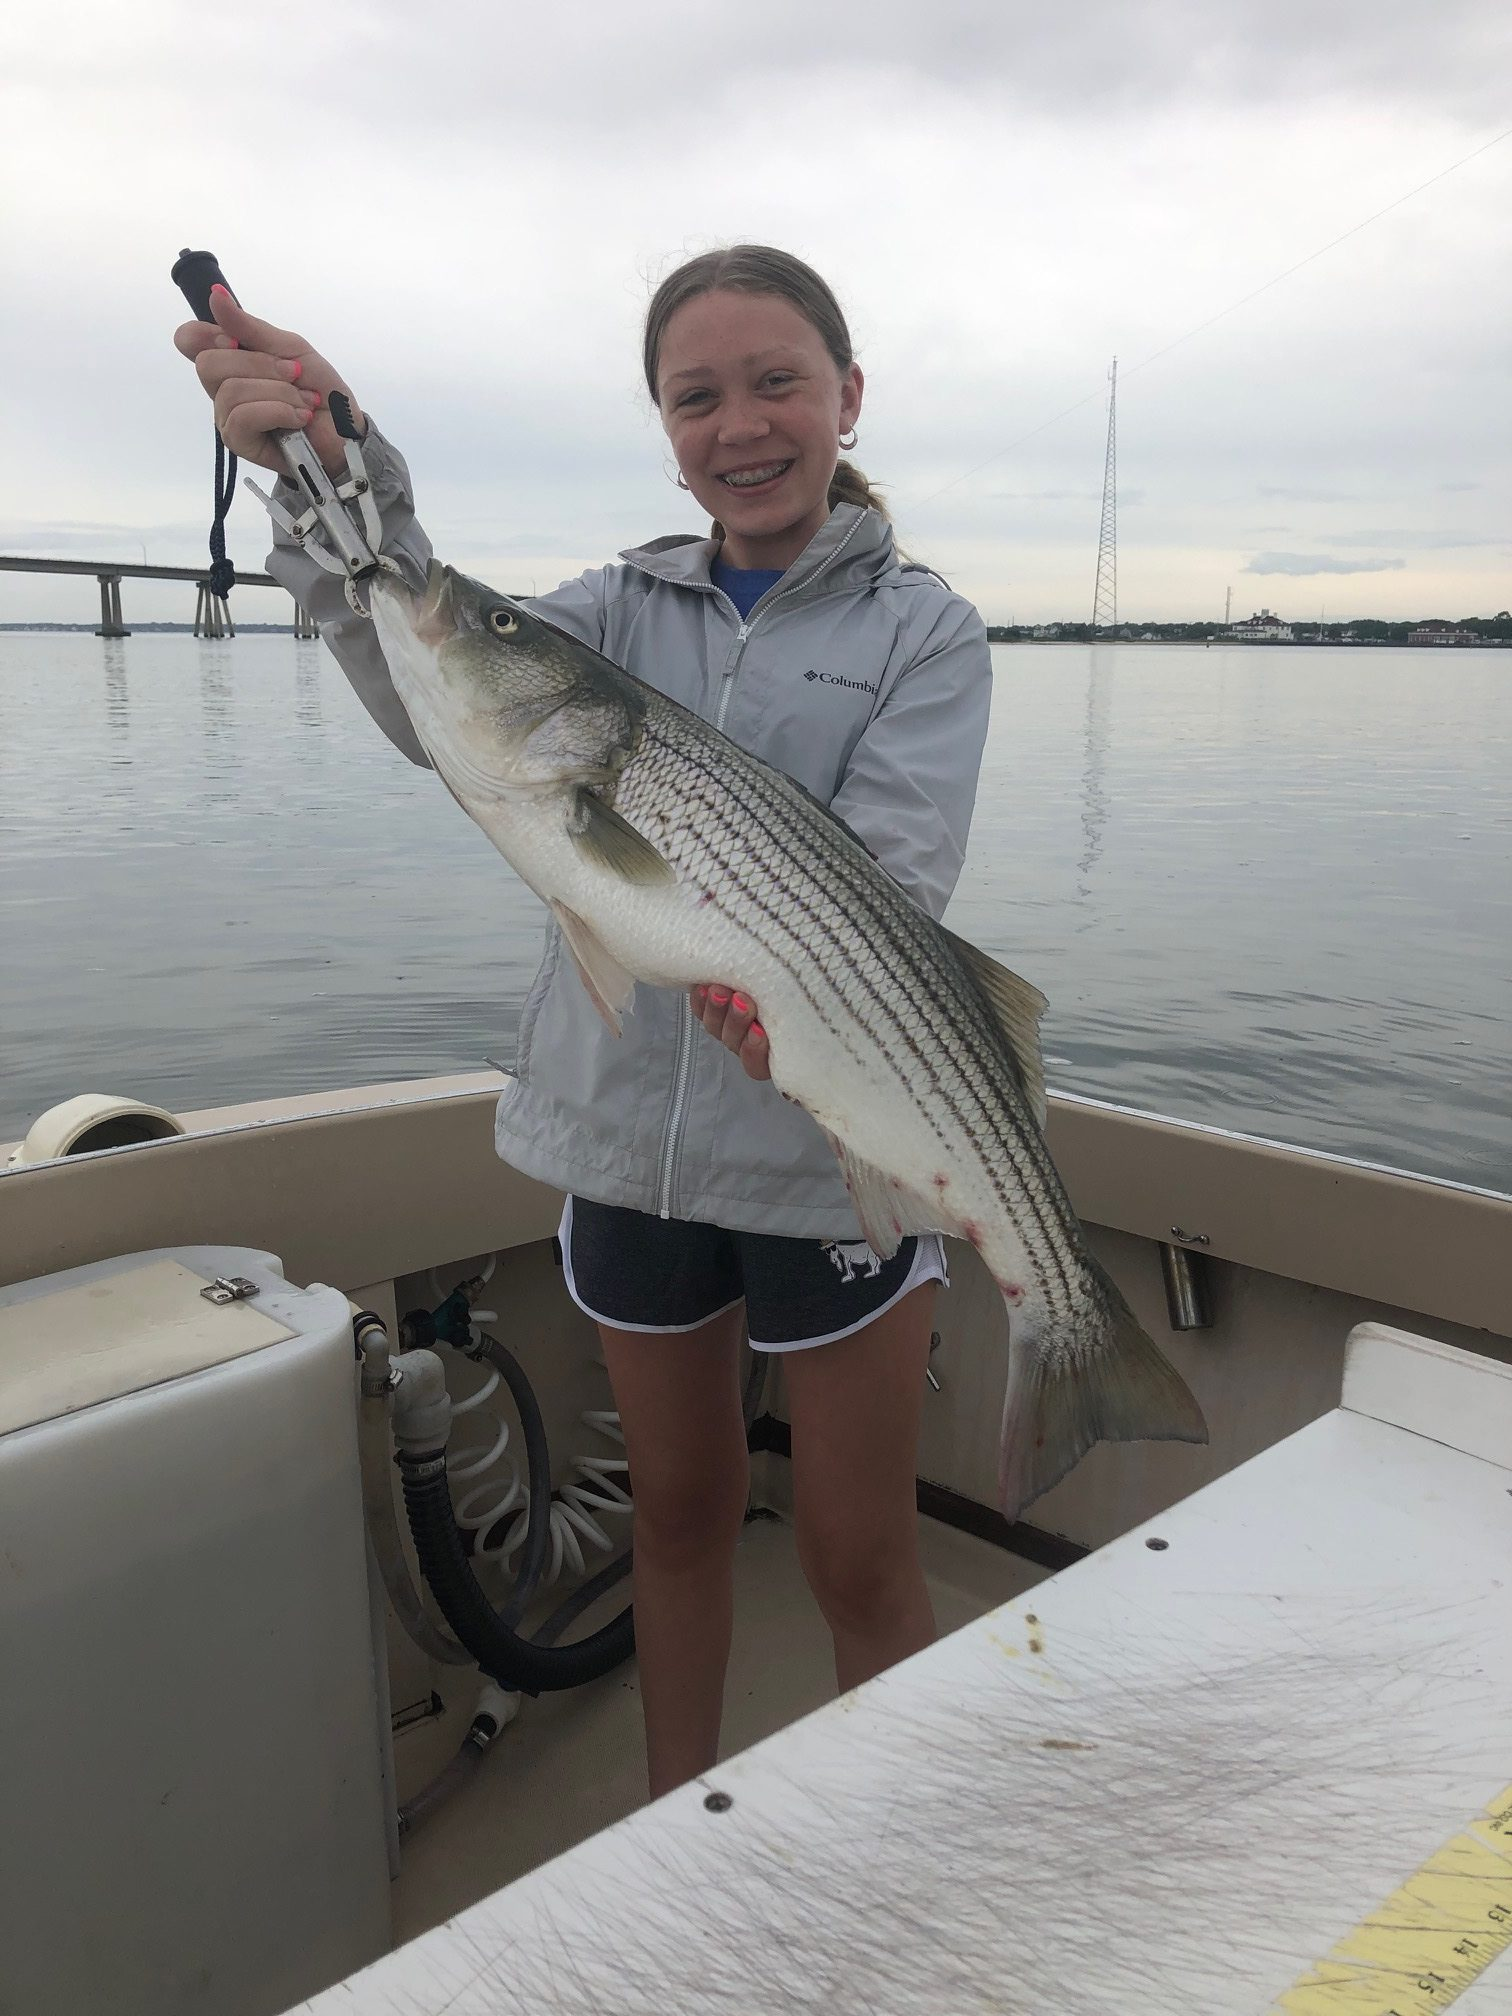 Charleigh Ries caught this nice 33-inch striped bass while fishing with her dad, Capt. Brad Ries of Someday Came Charters, in Shinnecock Bay recently.